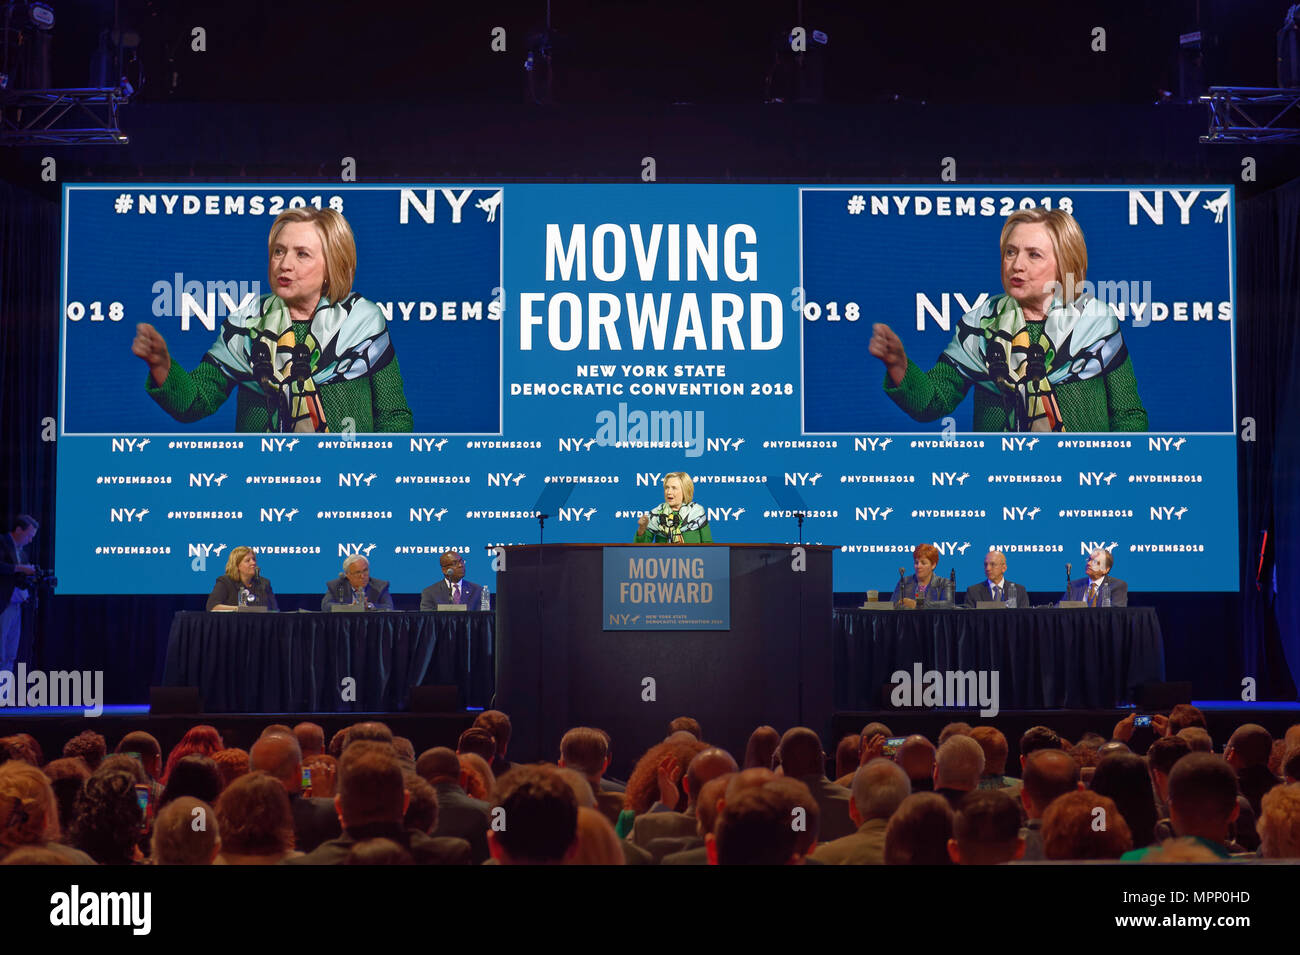 Long Island, USA. 23rd May, 2018. HILLARY CLINTON  delivers Keynote Address during Day 1 of New York State Democratic Convention, held at Hofstra University on Long Island. Clinton, the former First Lady and NYS Senator, endorsed the re-election of Gov. A. Cuomo for a third term, and mentioned how Hofstra was the site of her first 2016 debate with Trump. NYS Democratic Leaders on stage include CHRISTINE QUINN, Exec. Committee Chair, sitting to right of Clinton. Credit: Ann E Parry/Alamy Live News Stock Photo